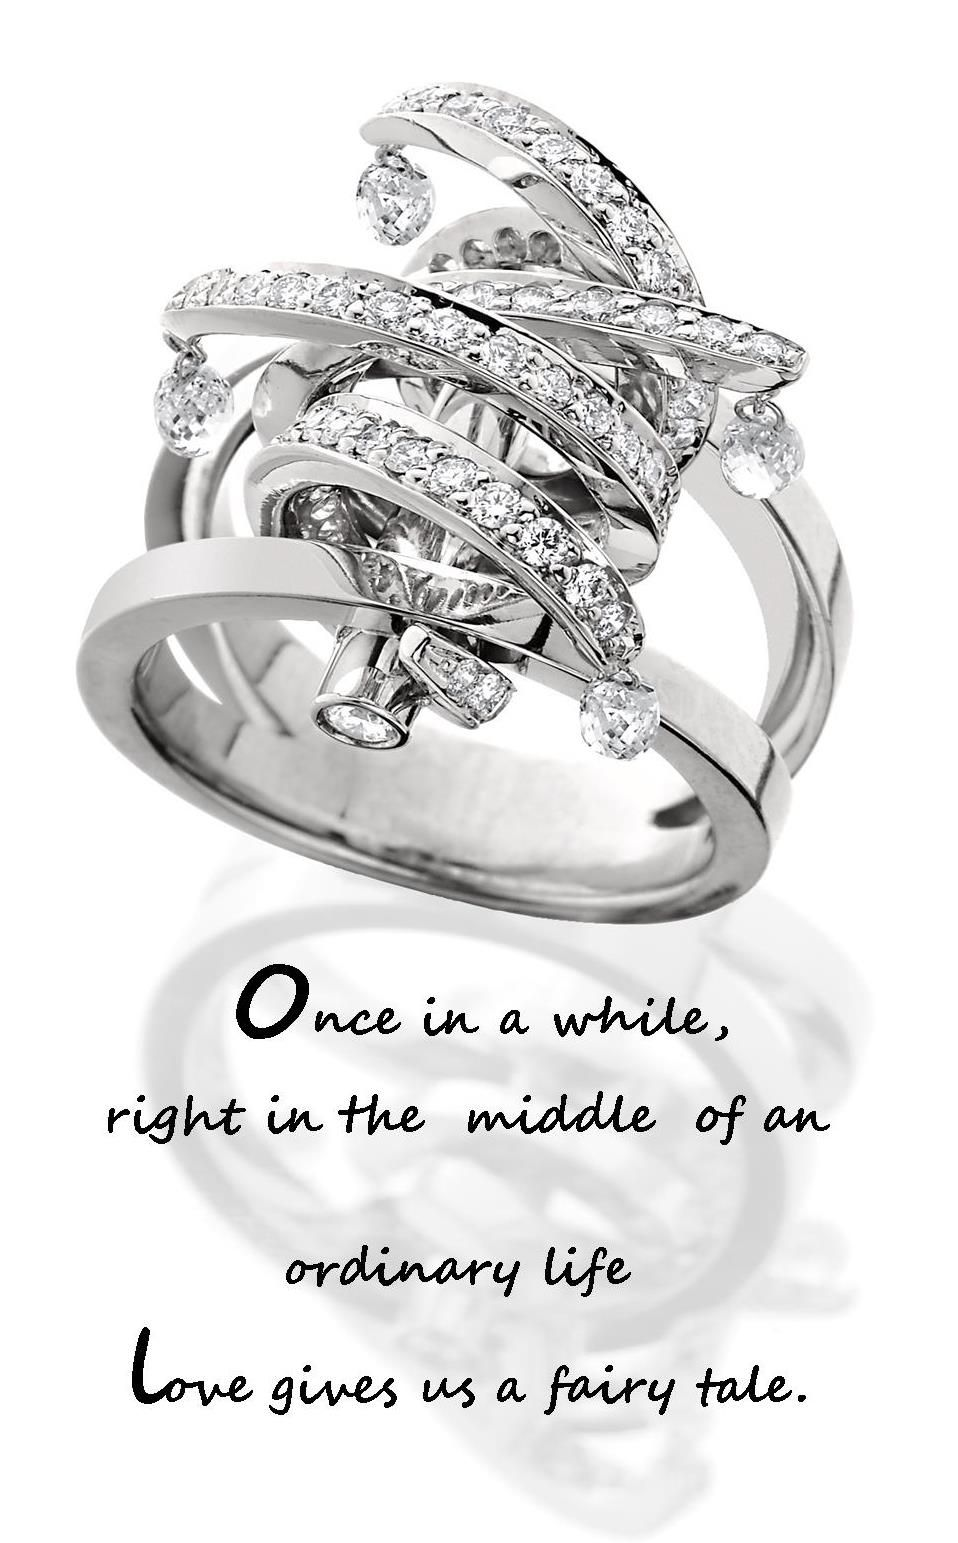 Adding a little spice to your life. <3  We can custom design and craft the ring of your dreams @. ohsosweet.com